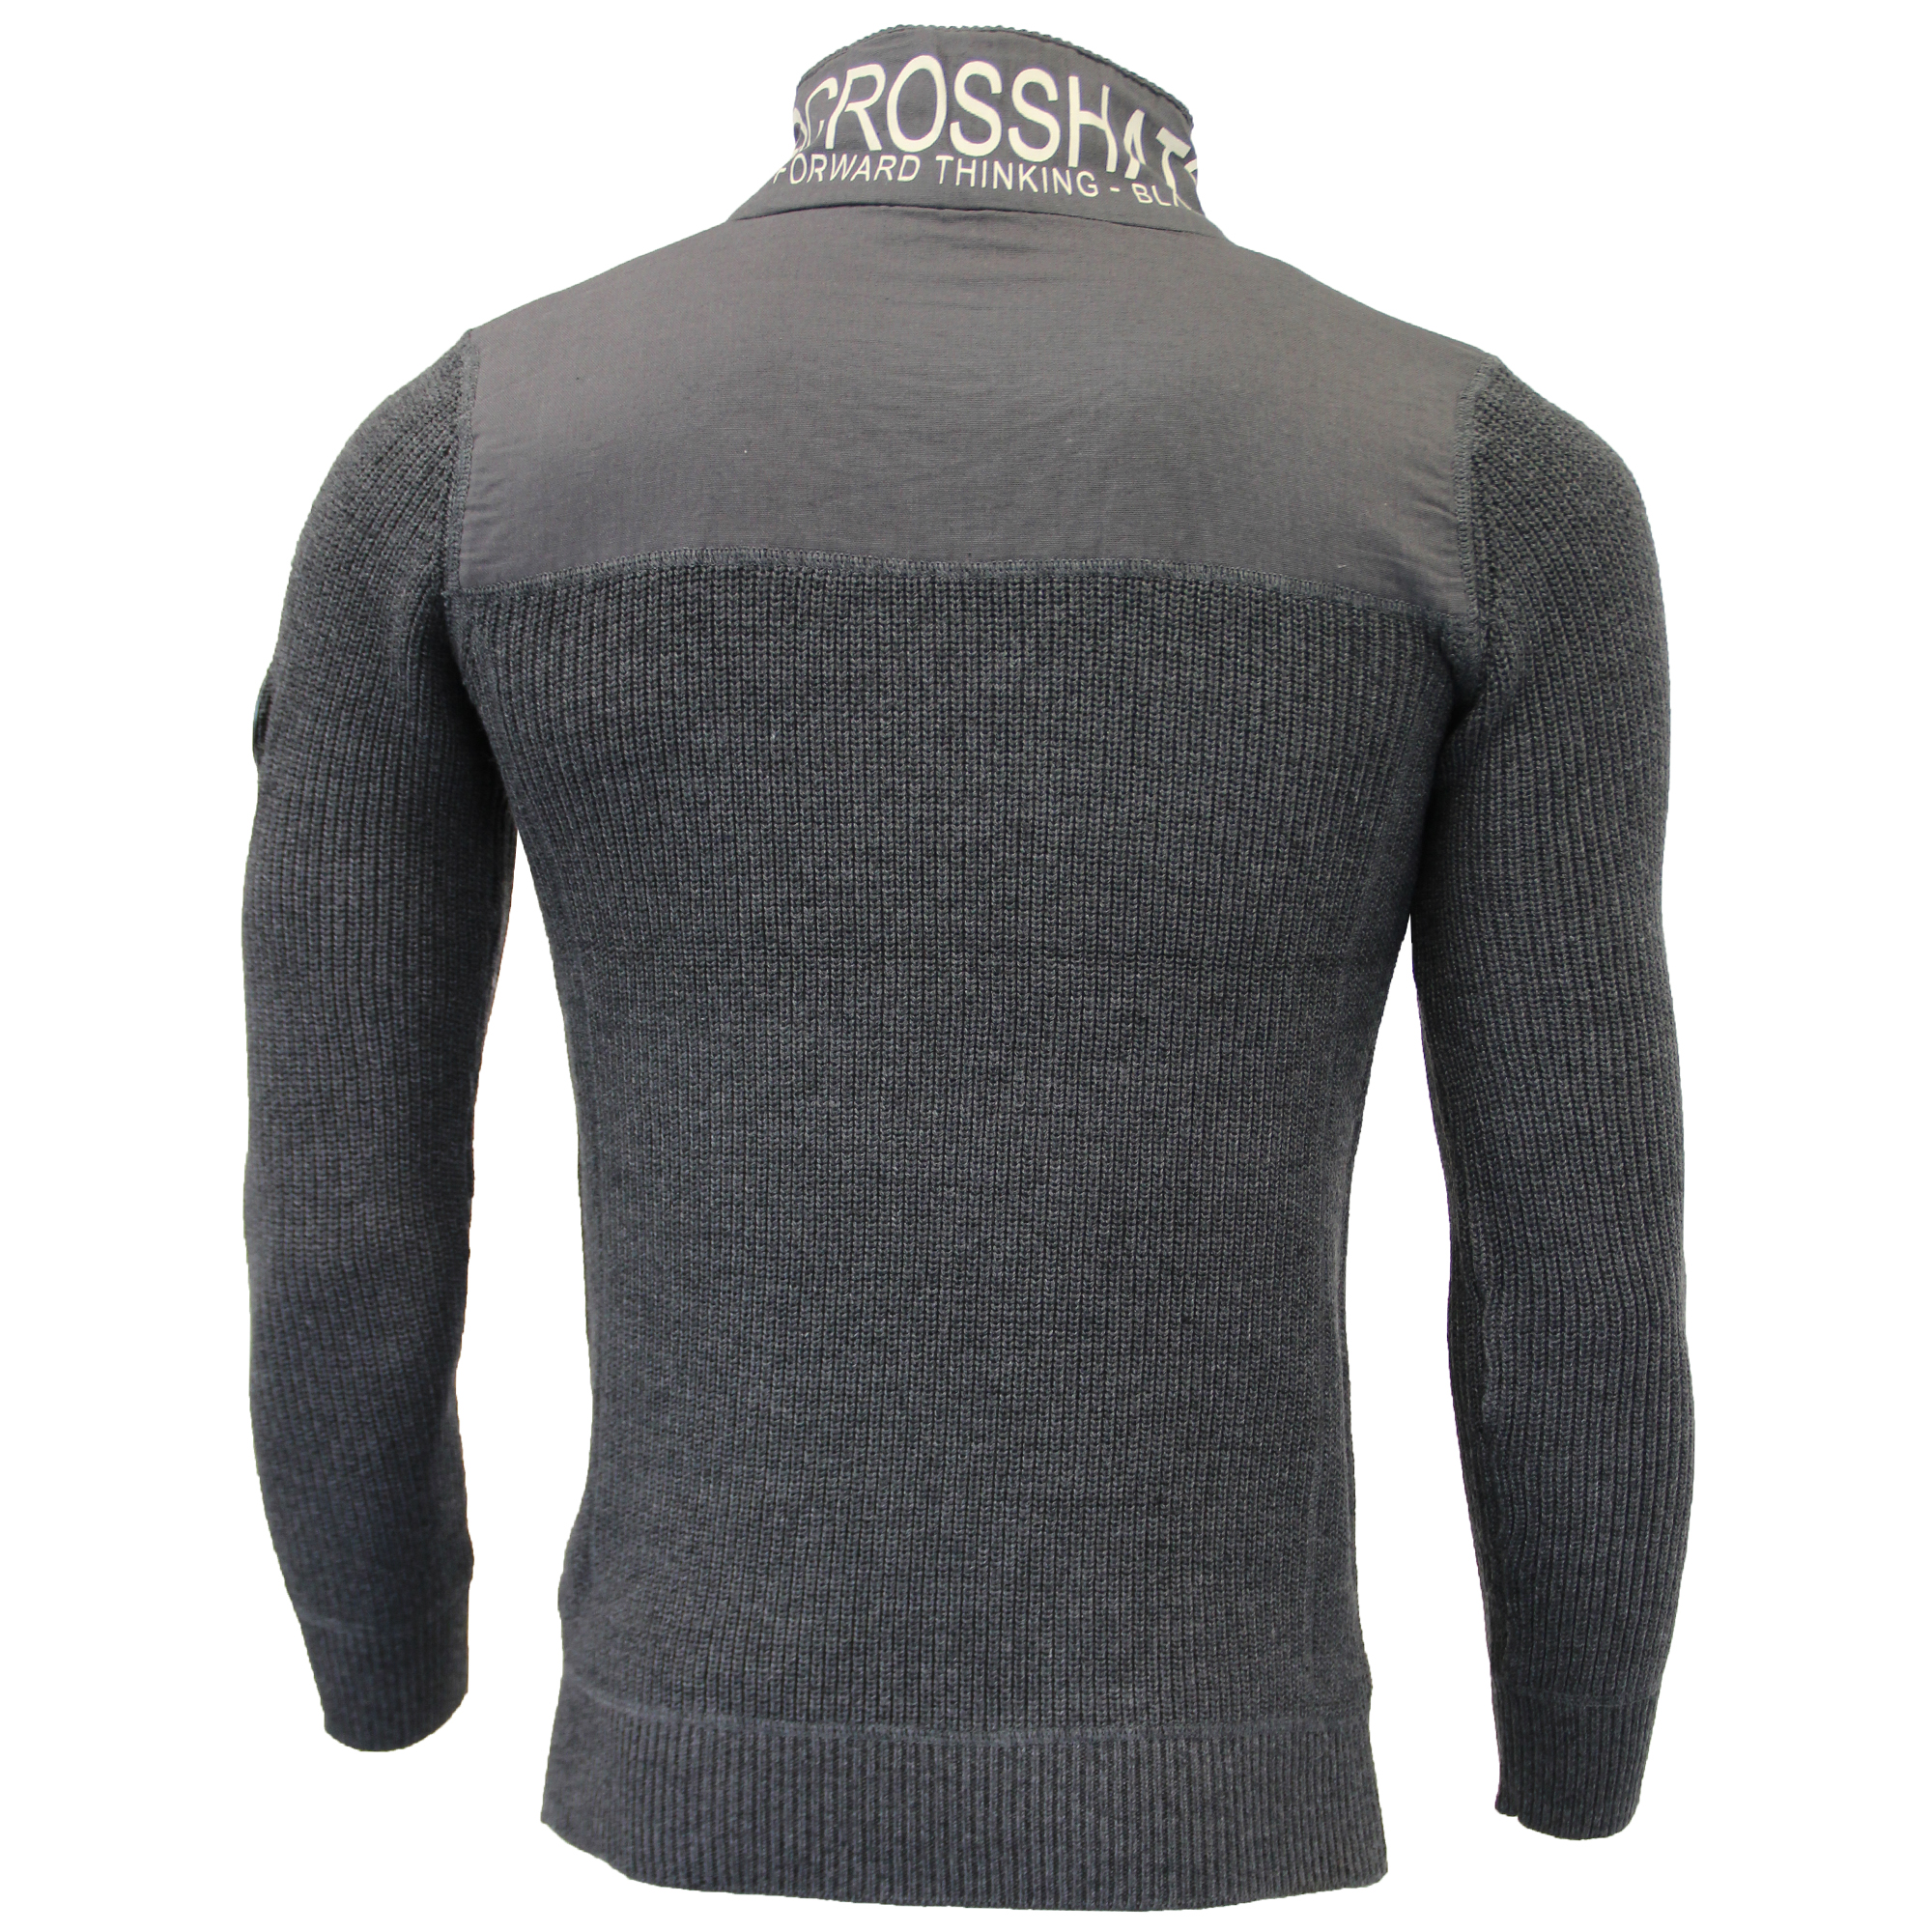 Mens-Knitted-Cotton-Crosshatch-Jumper-Sweater-Pullover-Waffle-Top-Zip-Winter-New thumbnail 5